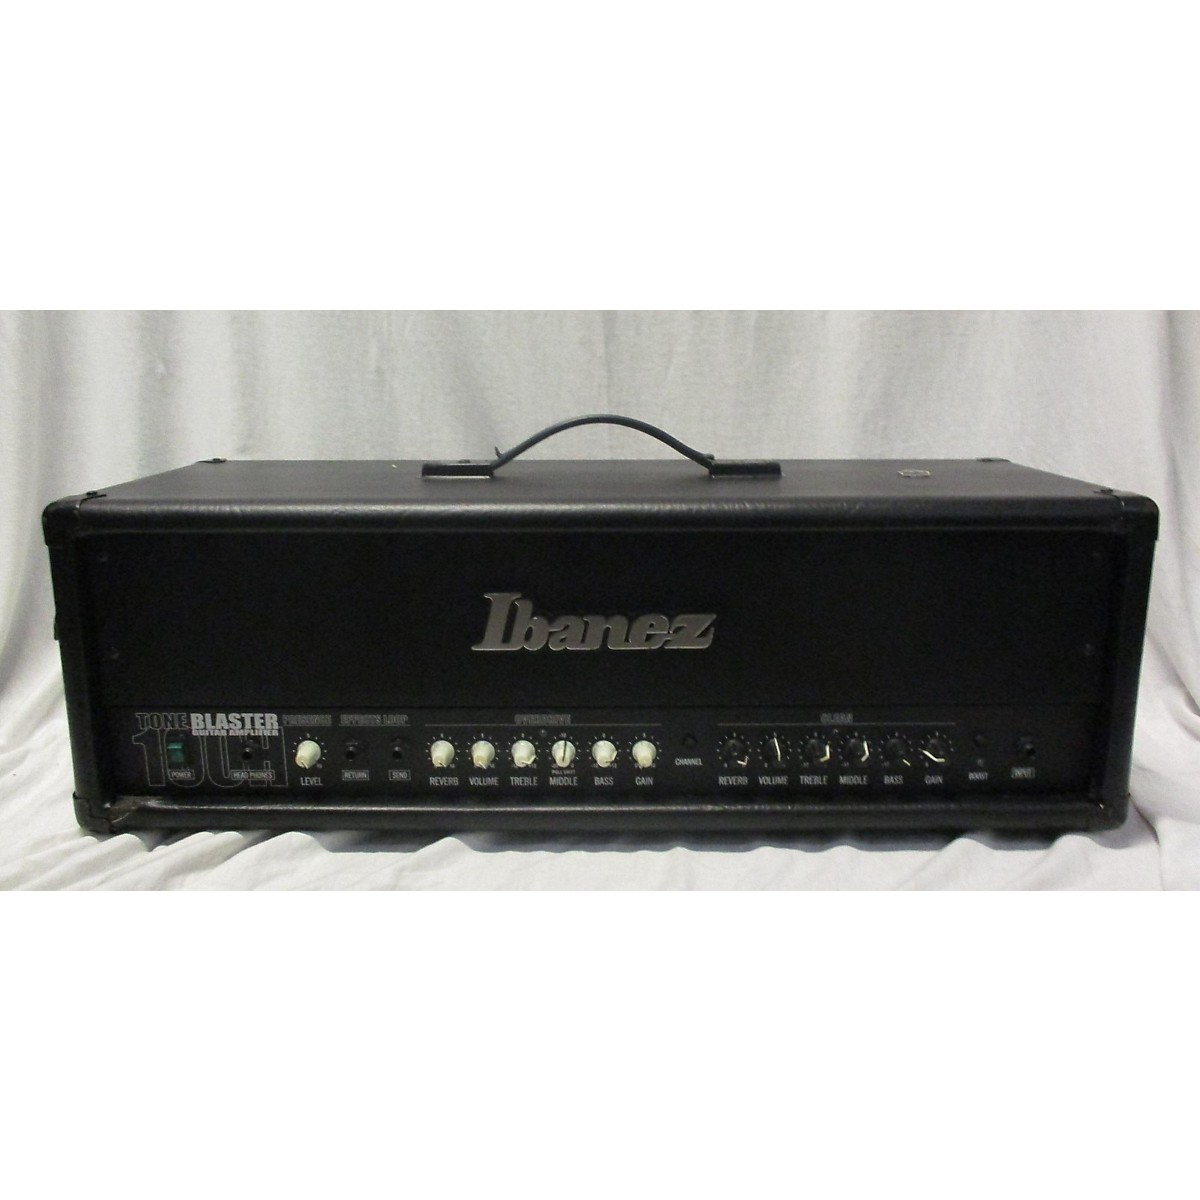 Ibanez TONE BLASTER 100H Solid State Guitar Amp Head